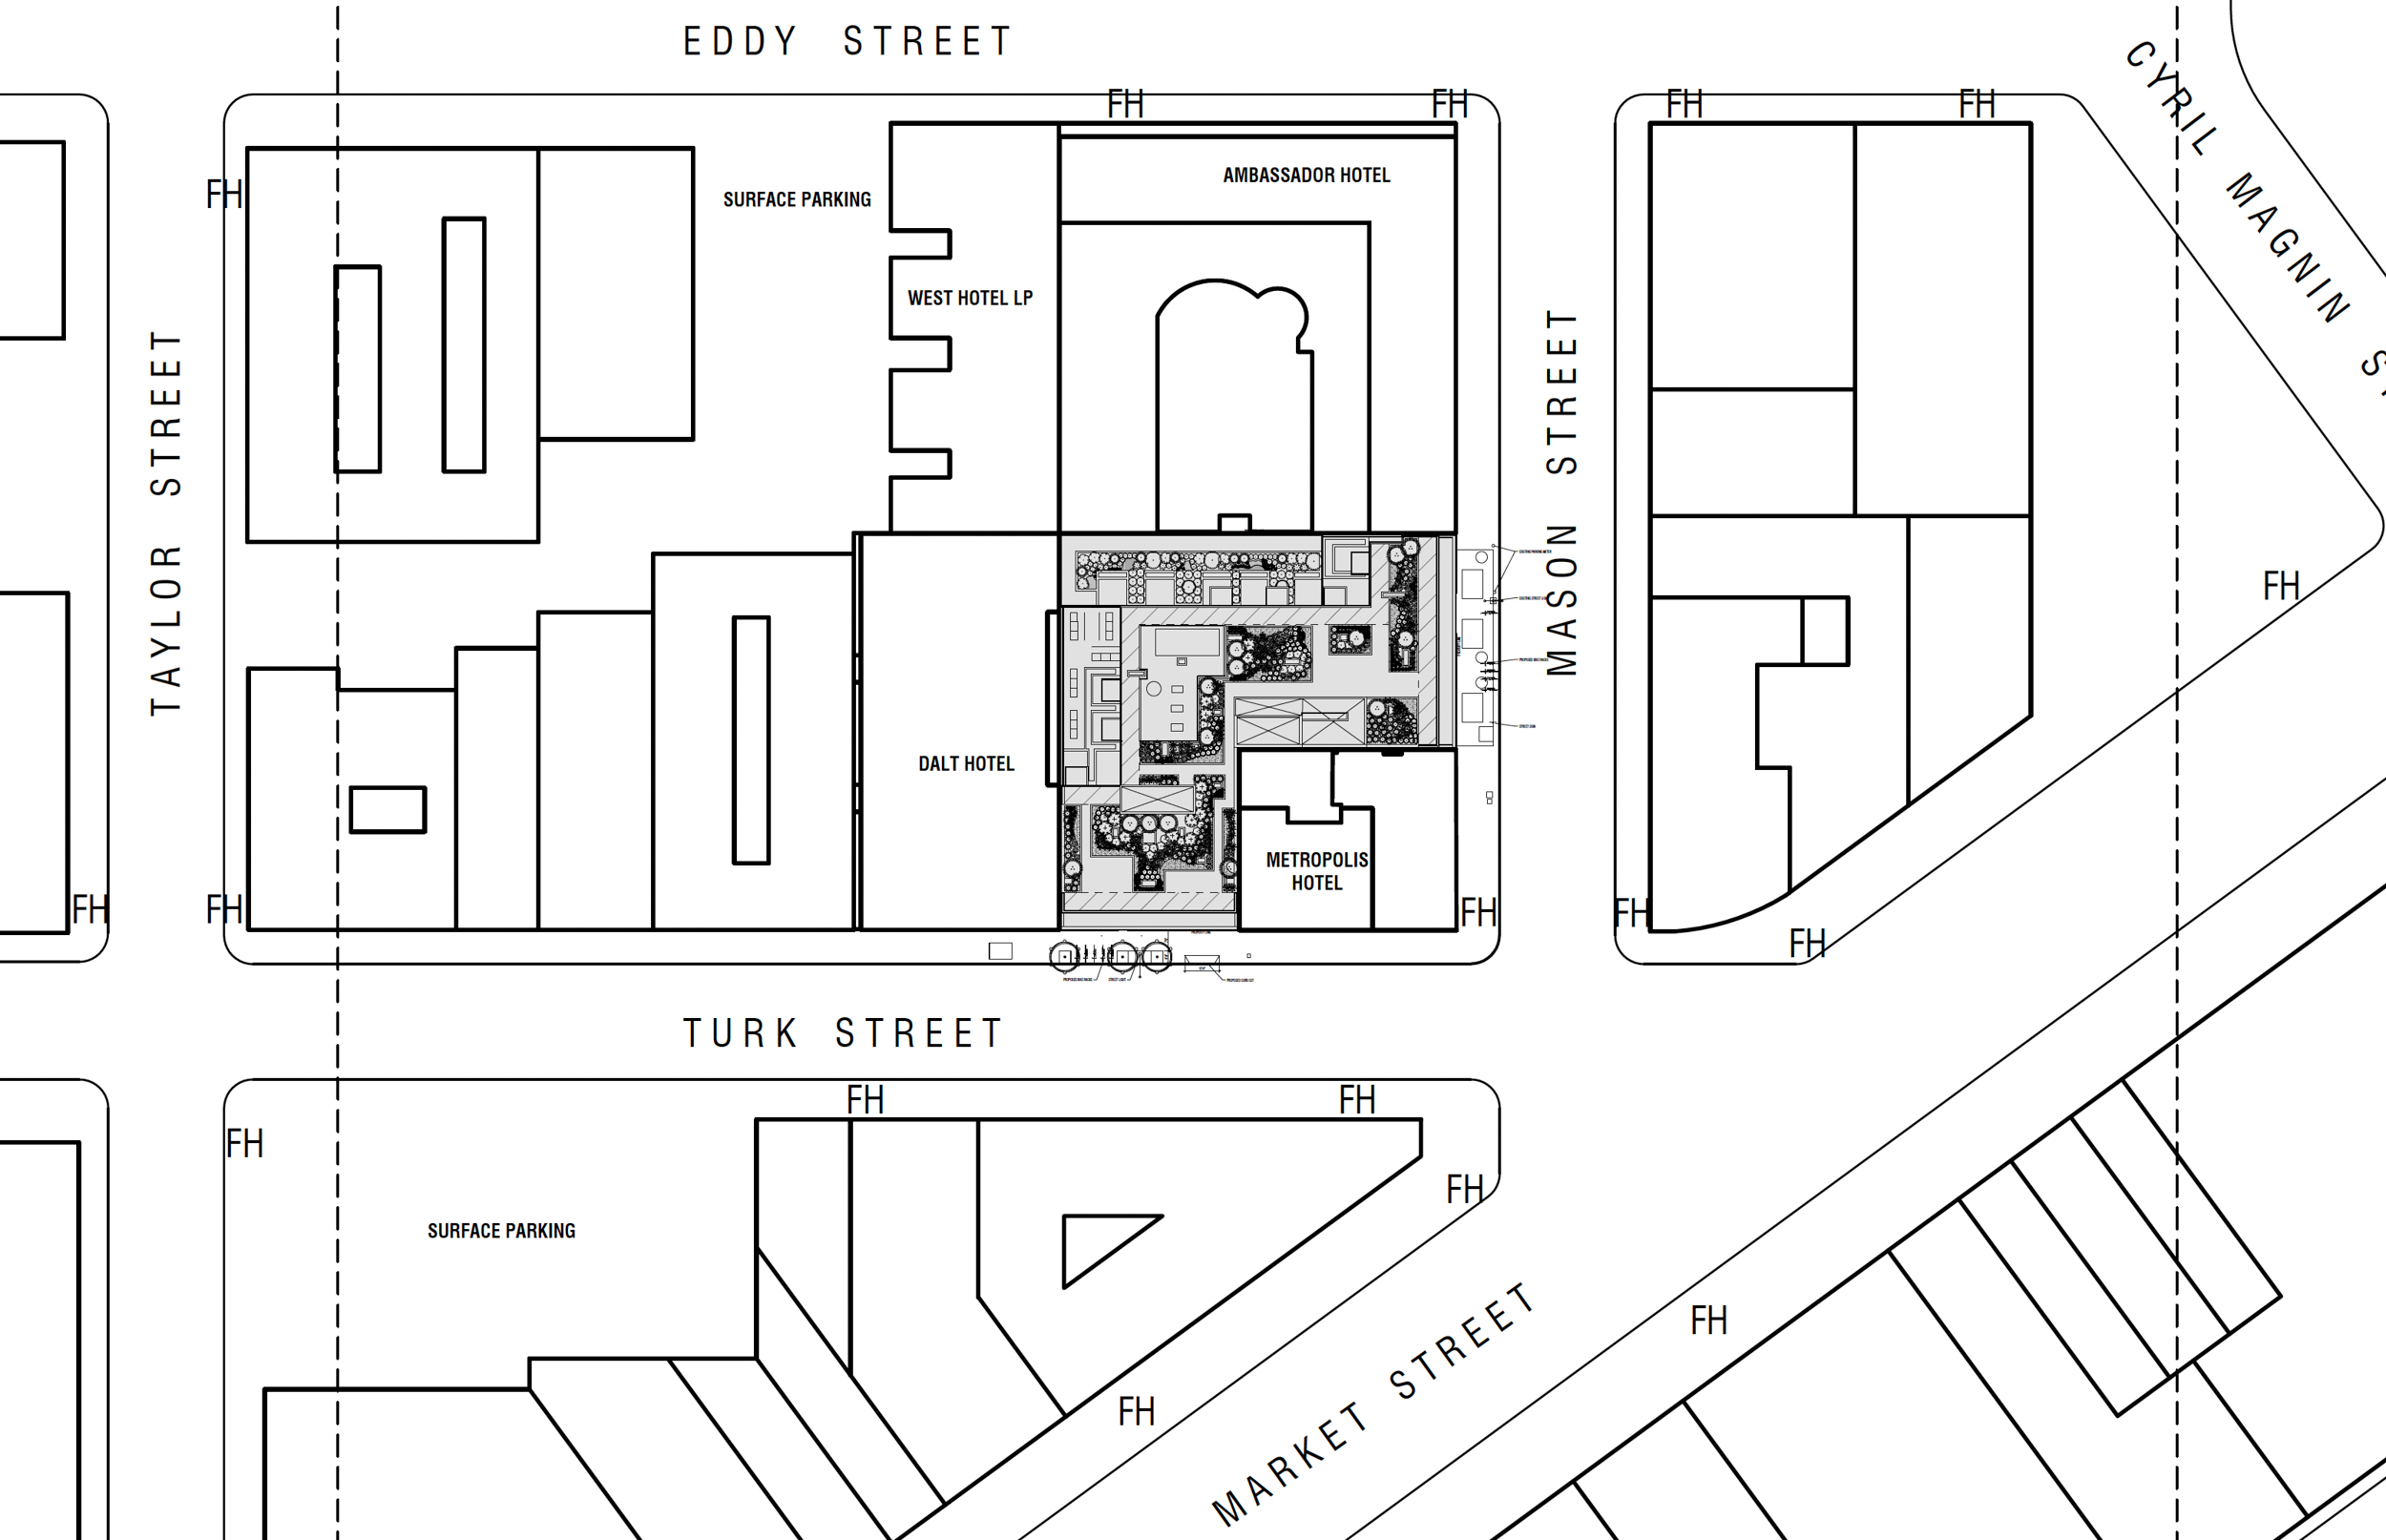 25 Mason Street aerial site map, rendering by Arquitectonica